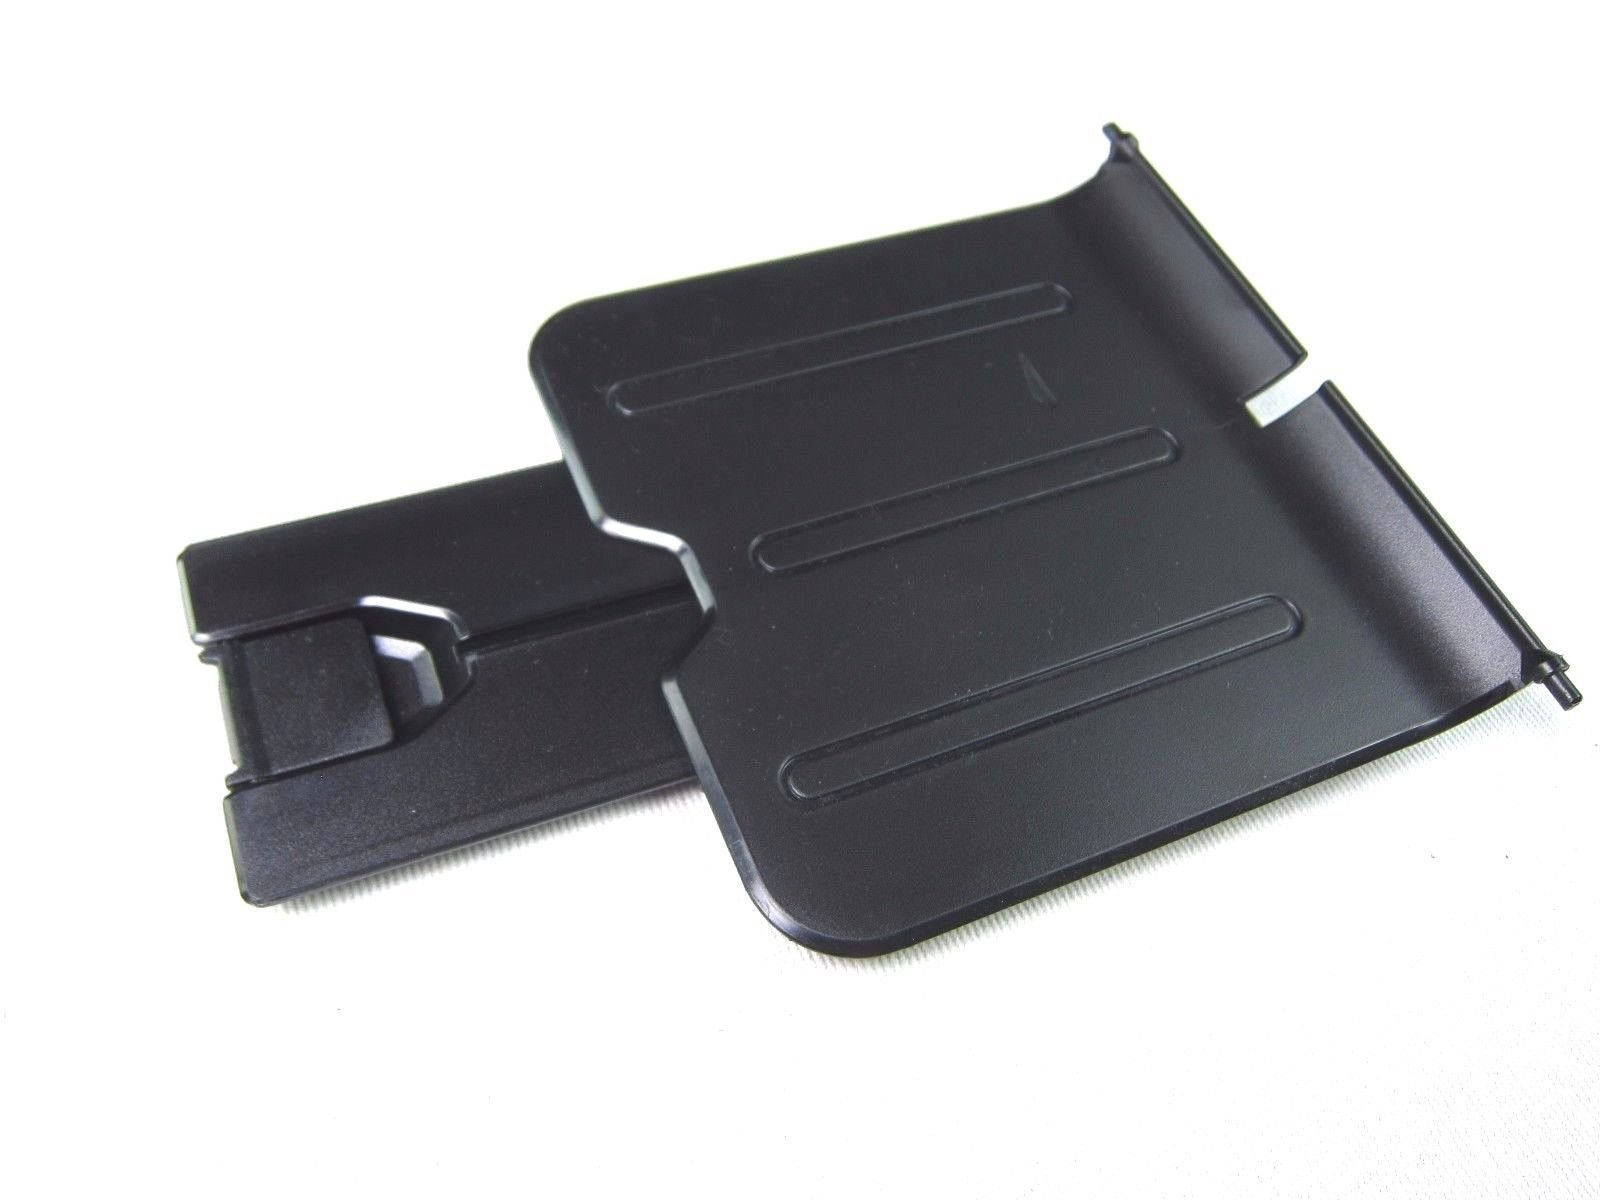 HP RM1-6903-000CN PAPER DELIVERY TRAY ASS'Y by HP